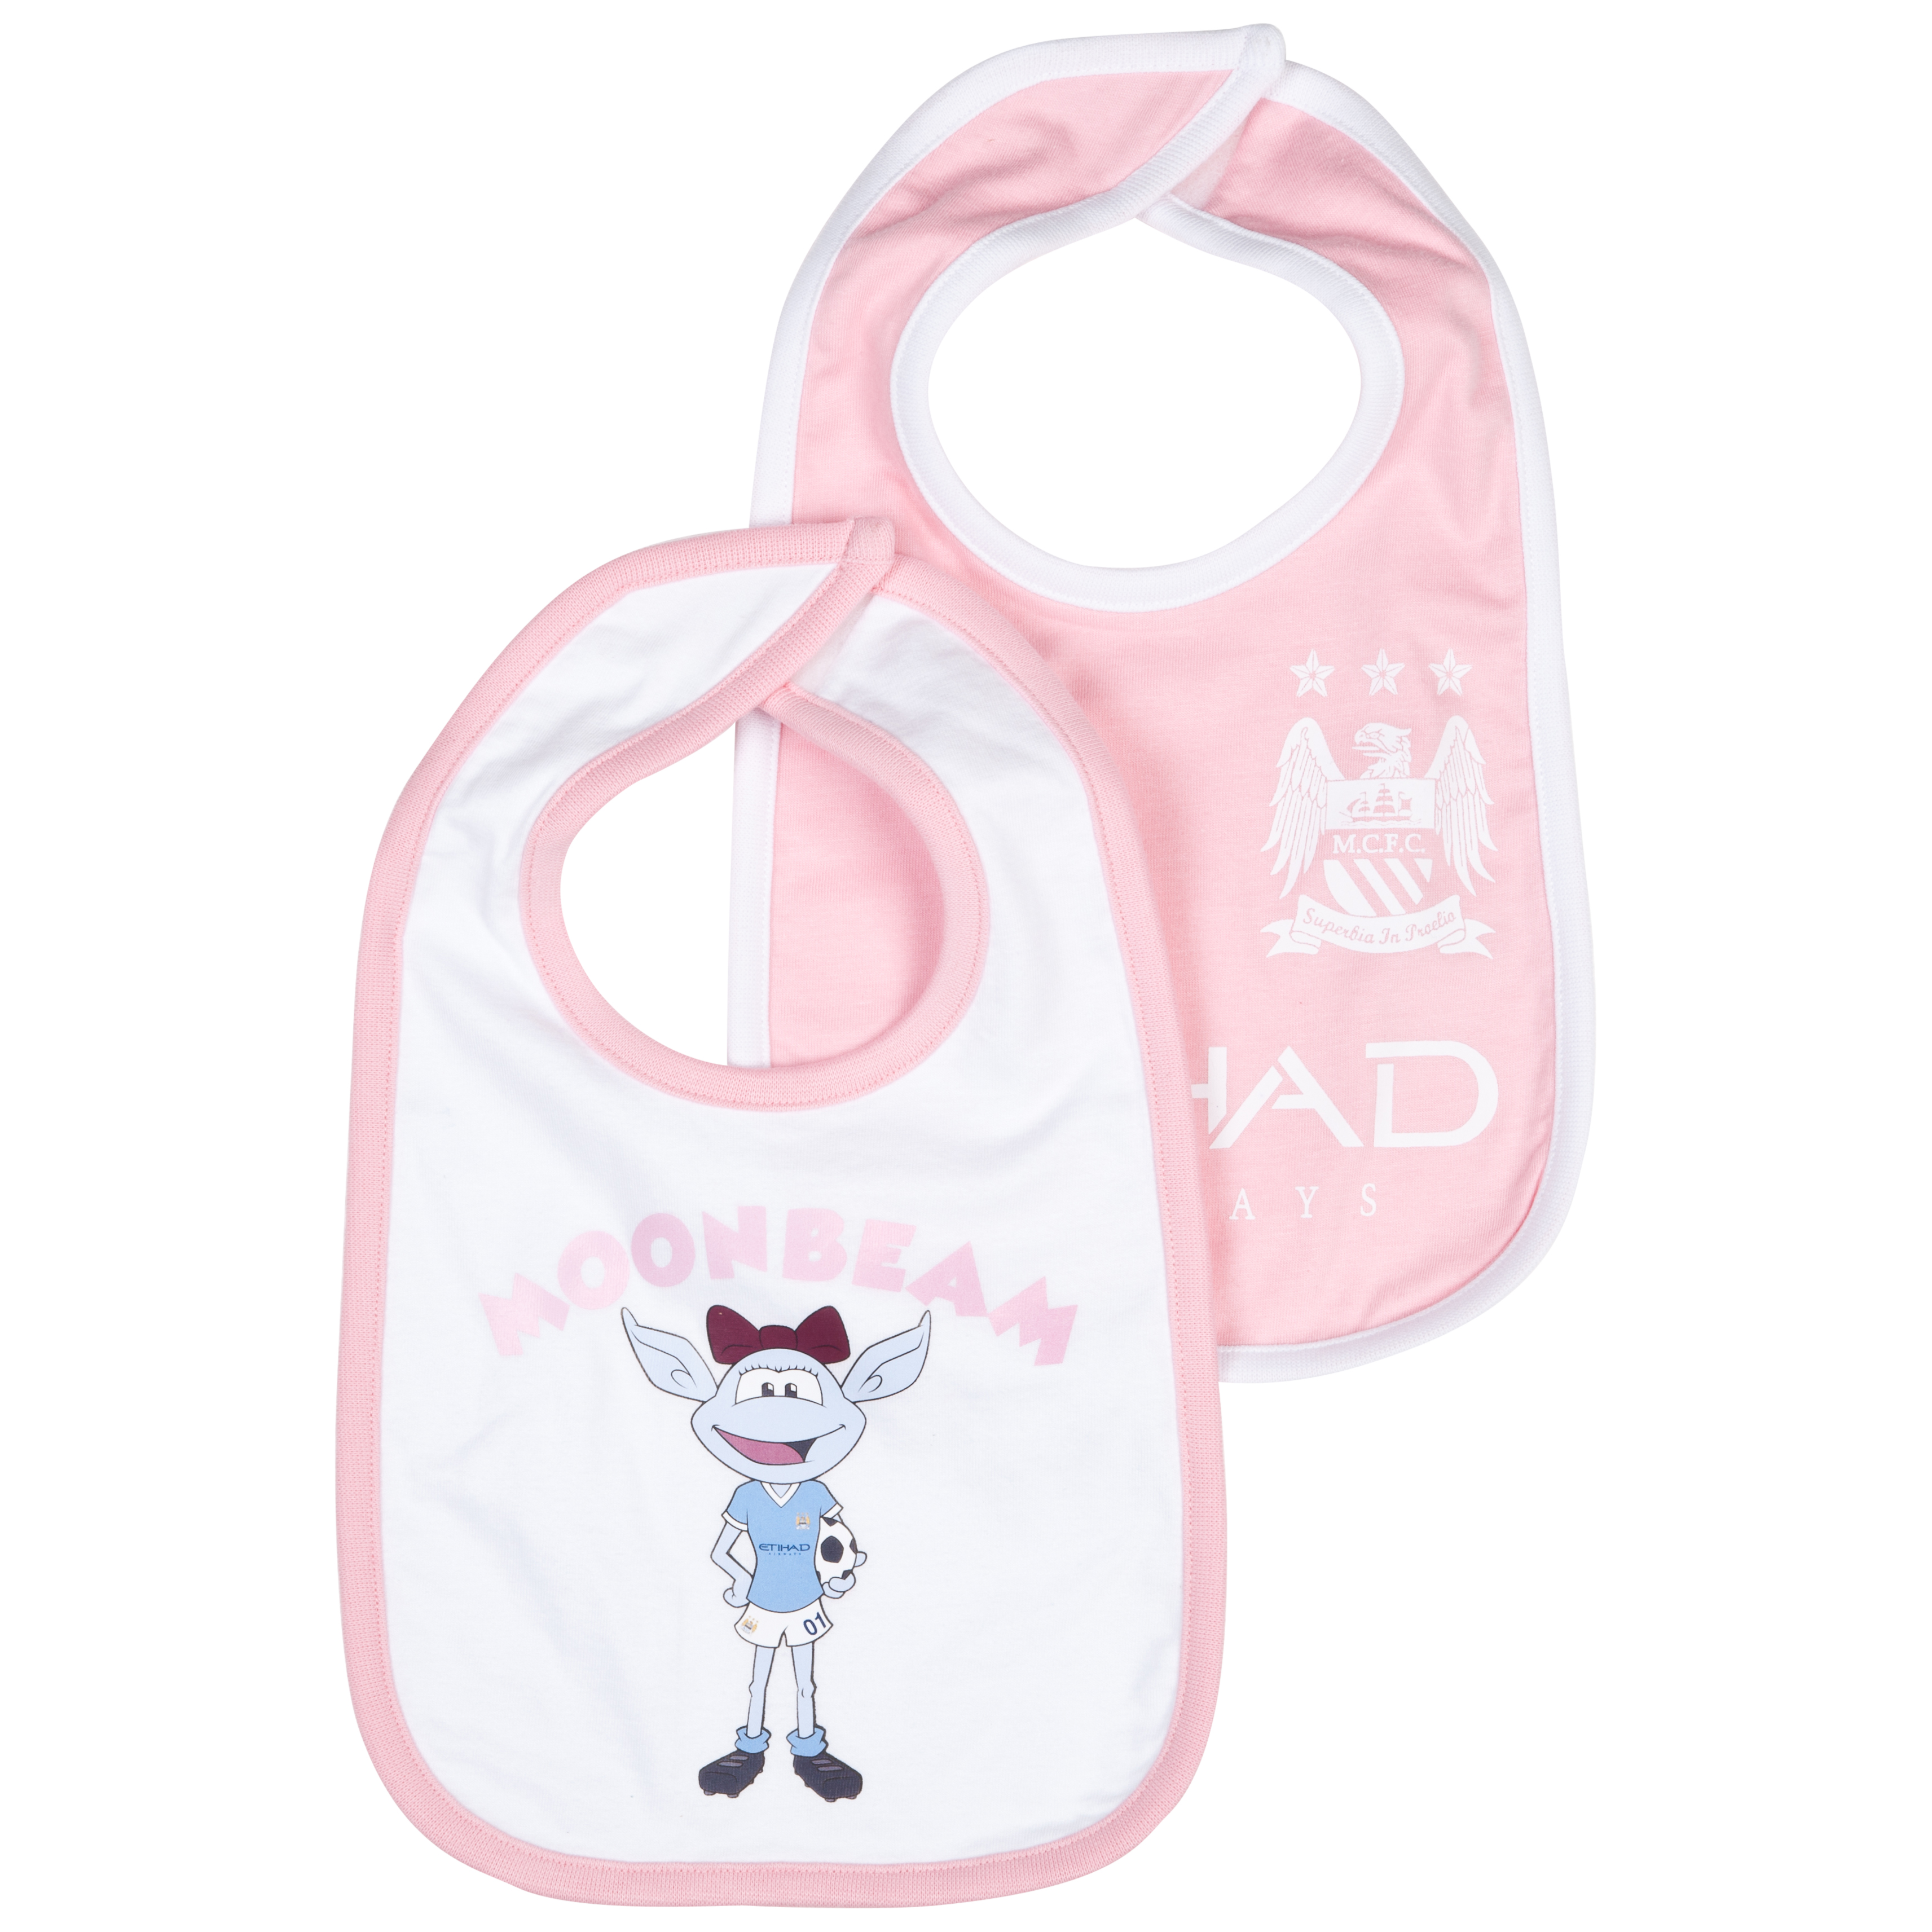 Manchester City Pack of 2 Bibs - Pink - Baby